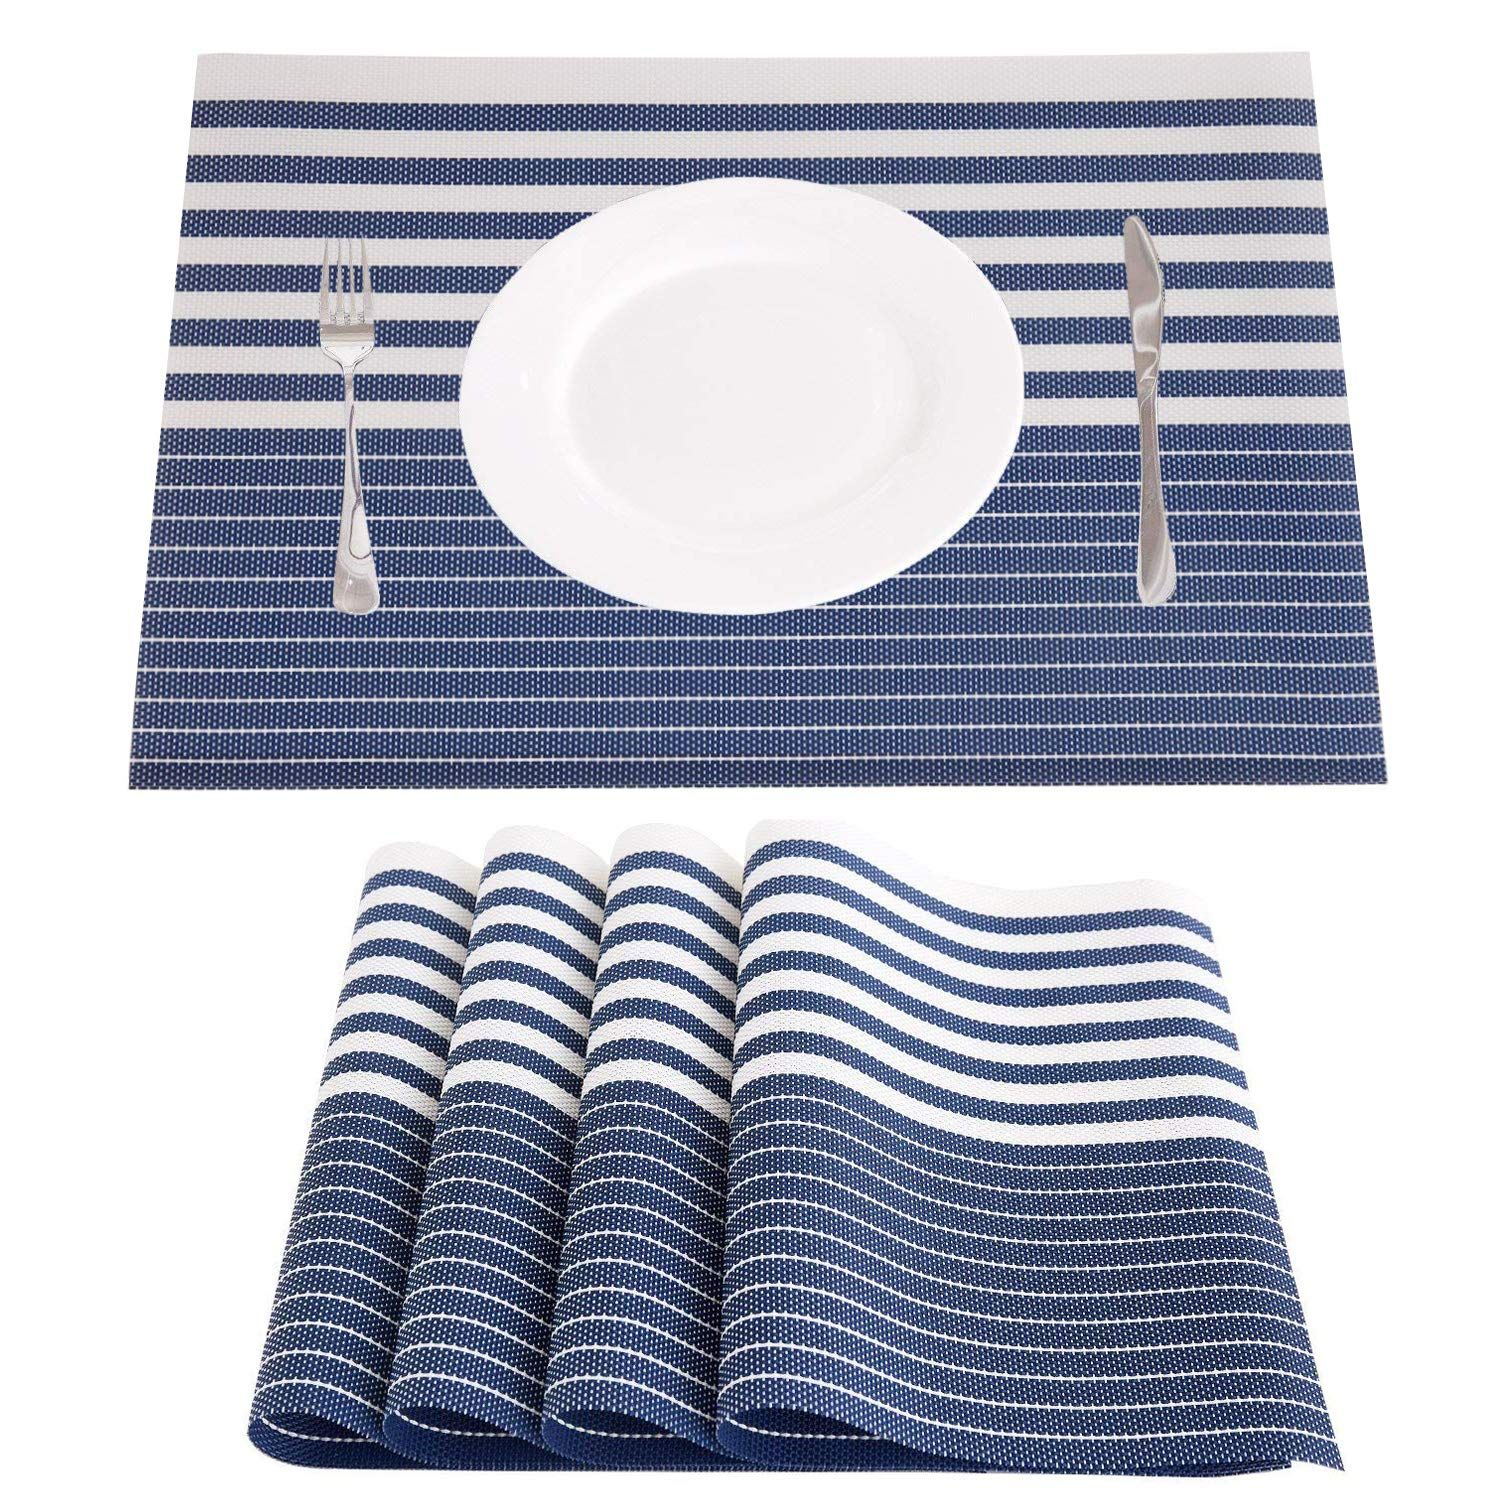 Njcharms Placemats Set Of 4 Heat Resistant Washable Nautical Blue Placemats For Dining Kitchen Table En Blue Placemats Woven Placemats Dining Table In Kitchen